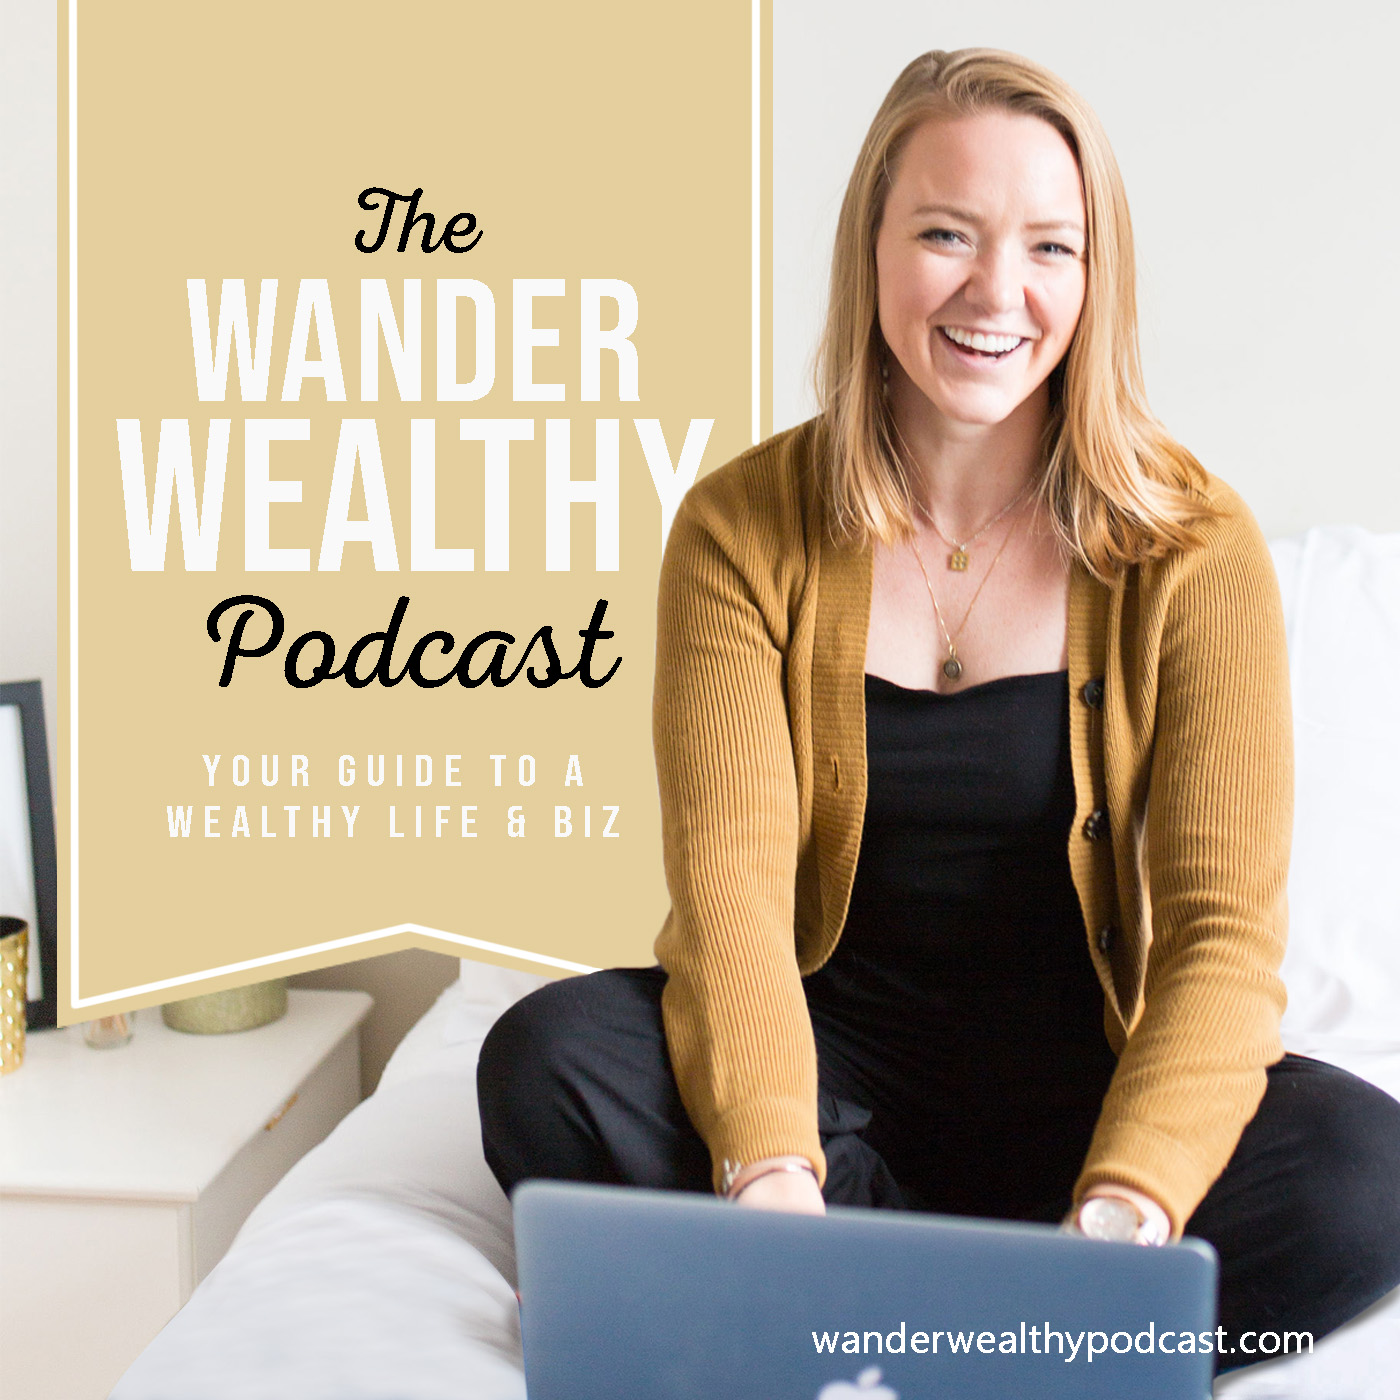 The Wander Wealthy Podcast Cover Art.jpg